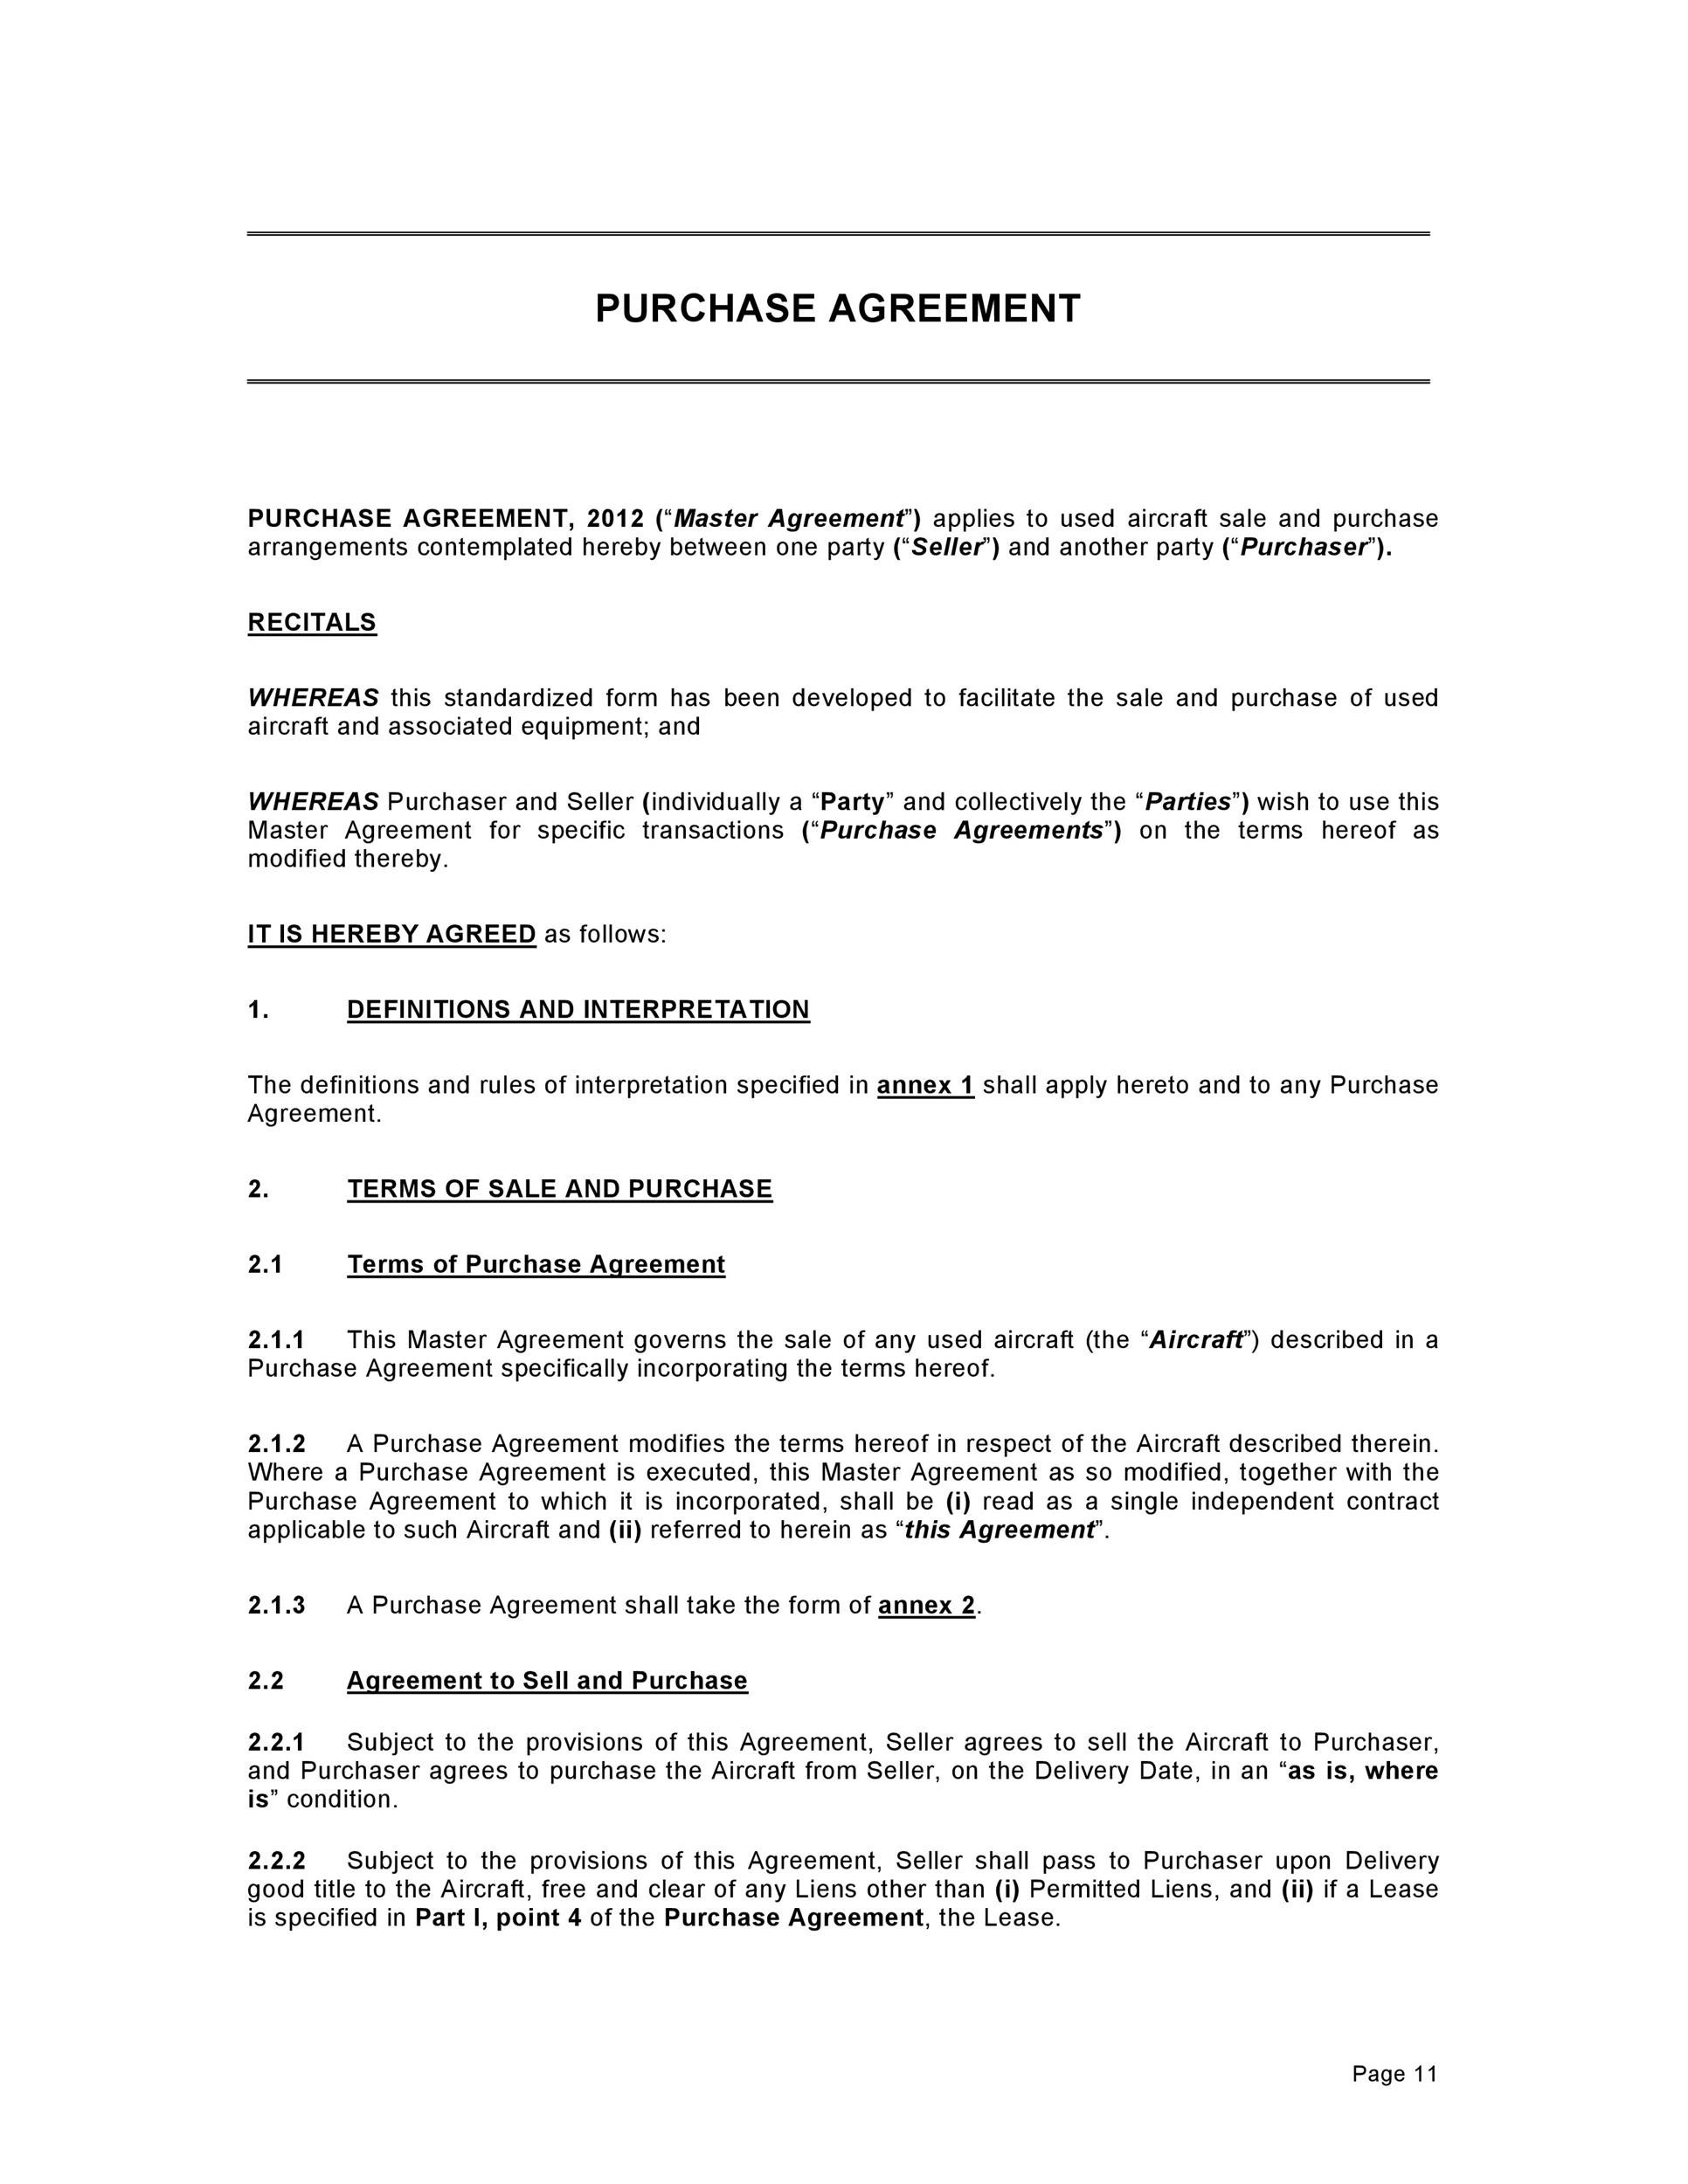 37 simple purchase agreement templates real estate business free purchase agreement template 11 cheaphphosting Choice Image